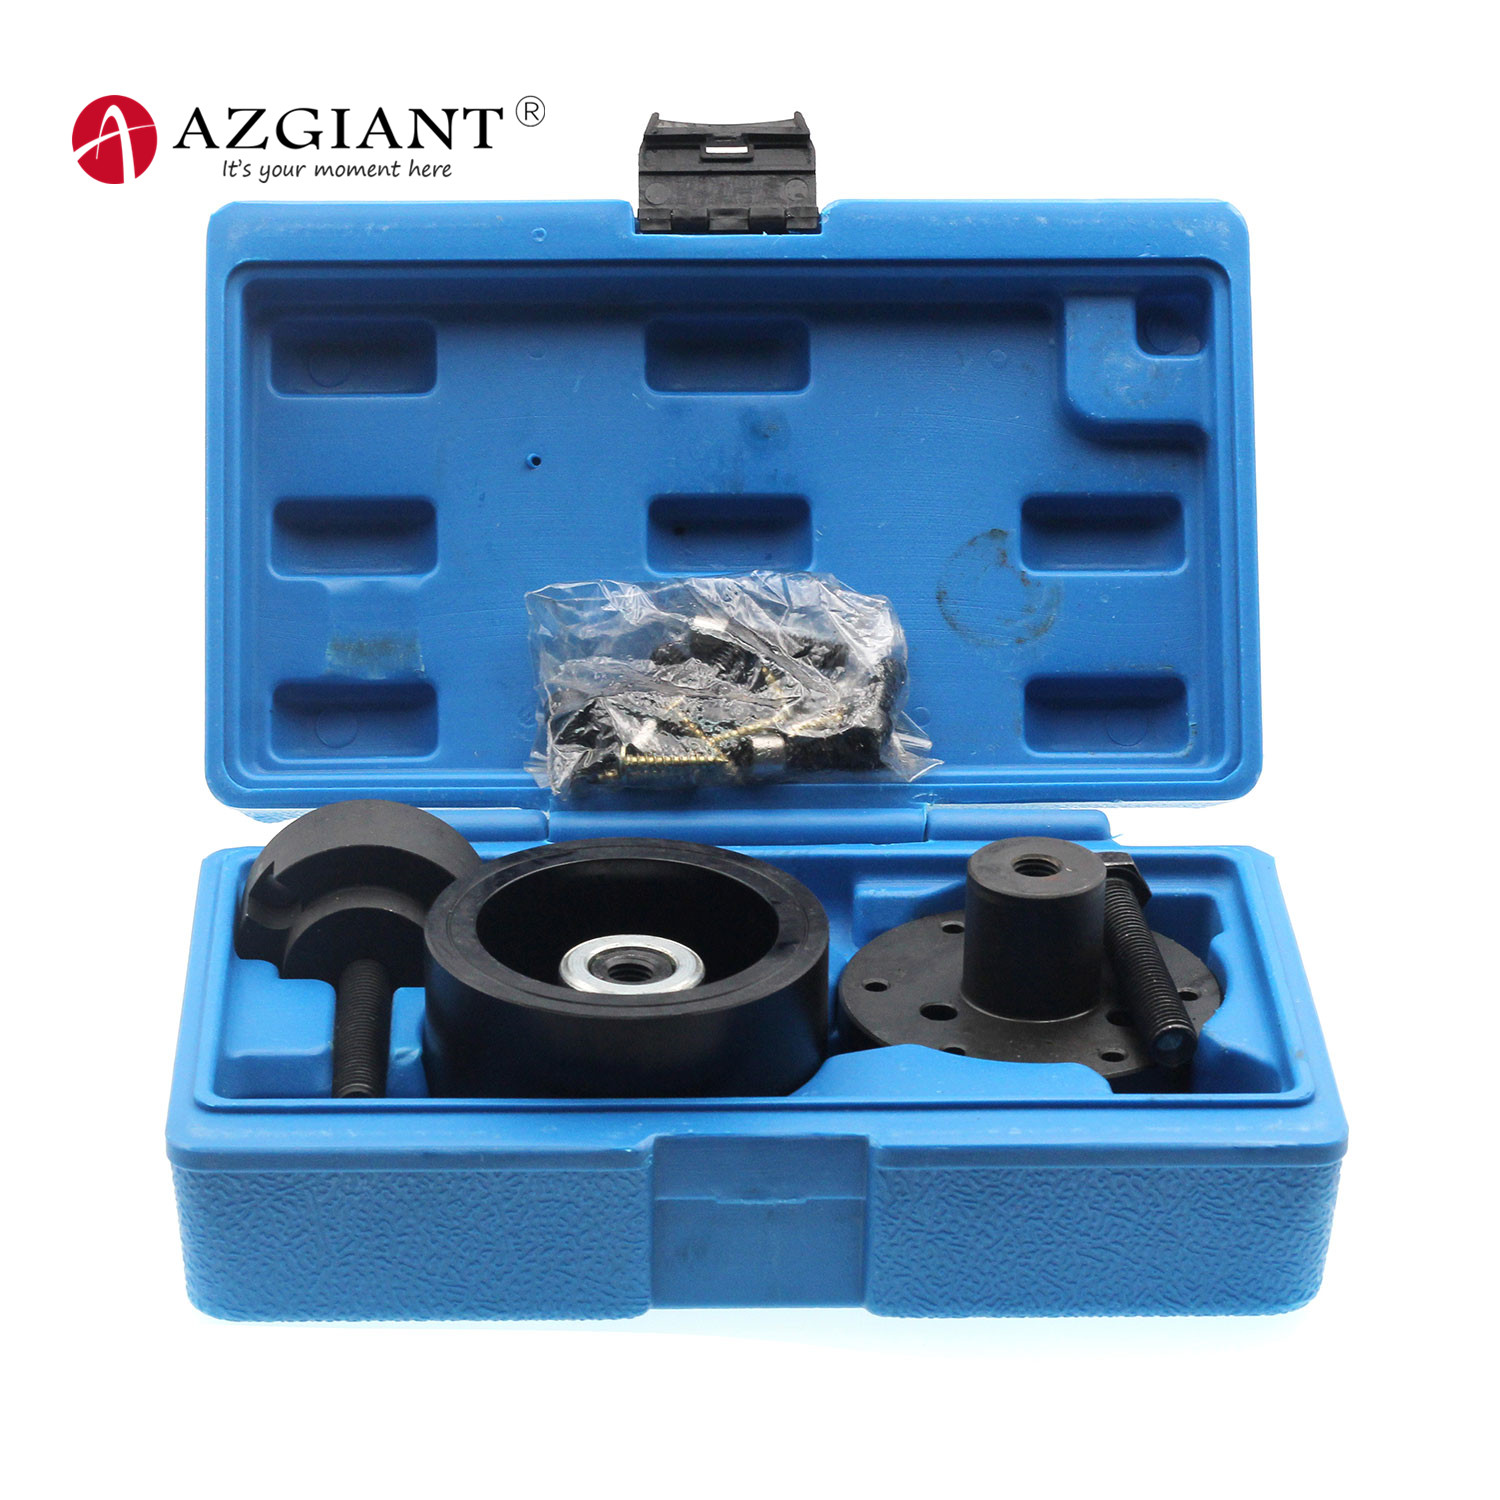 For BMW  N46 N52 N53 N54 N45 crankshaft front and rear oil seal disassembly tool